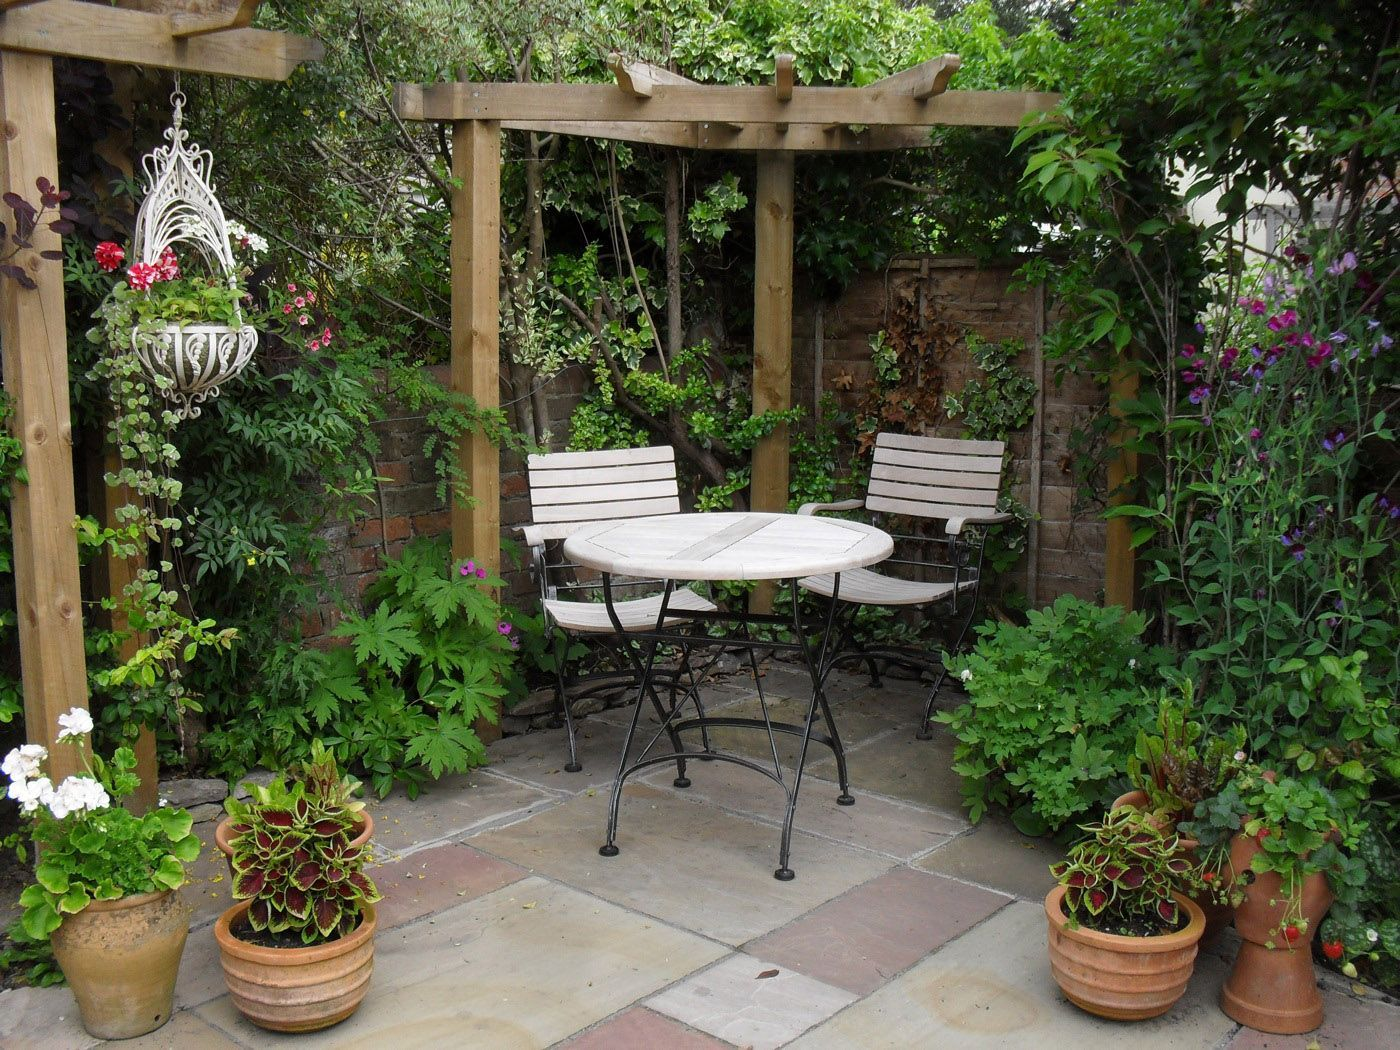 20 Courtyard Garden Design Ideas Pictures, Most Stylish and Lovely ...